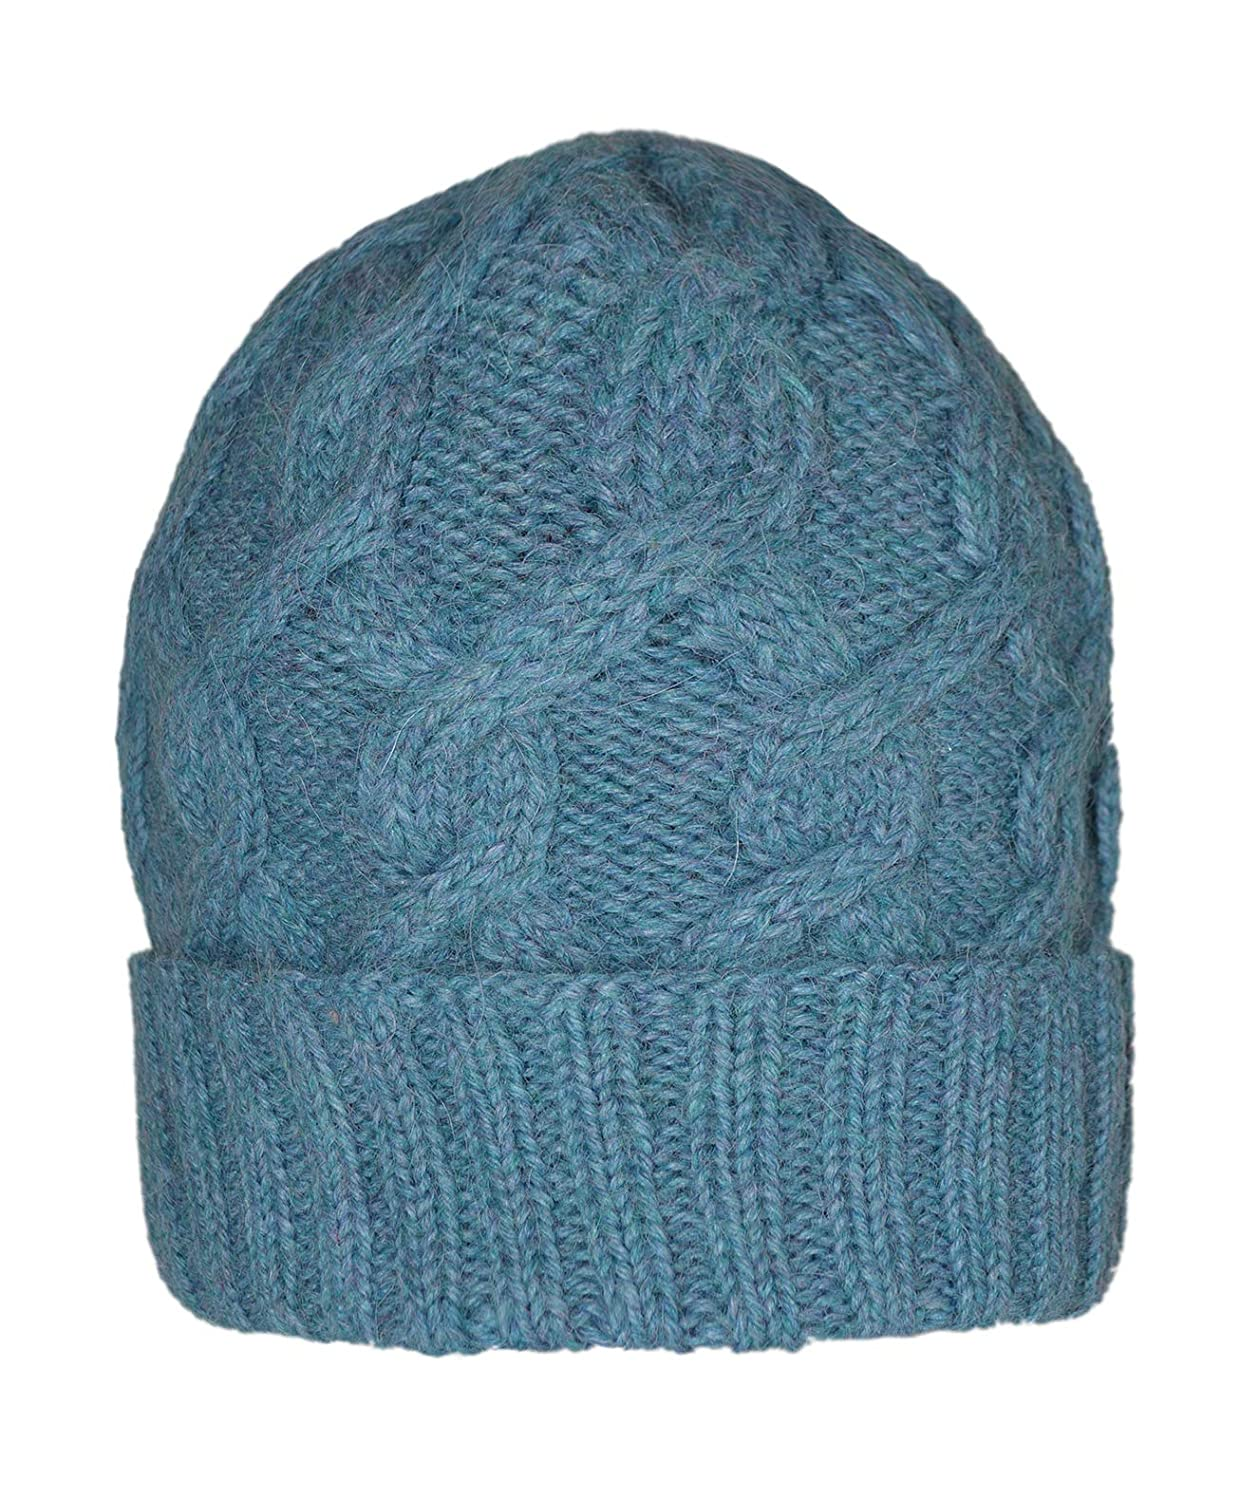 bluee Invisible World Women's 100% Alpaca Wool Hat Knit Winter Beanie Snake Cable Cap